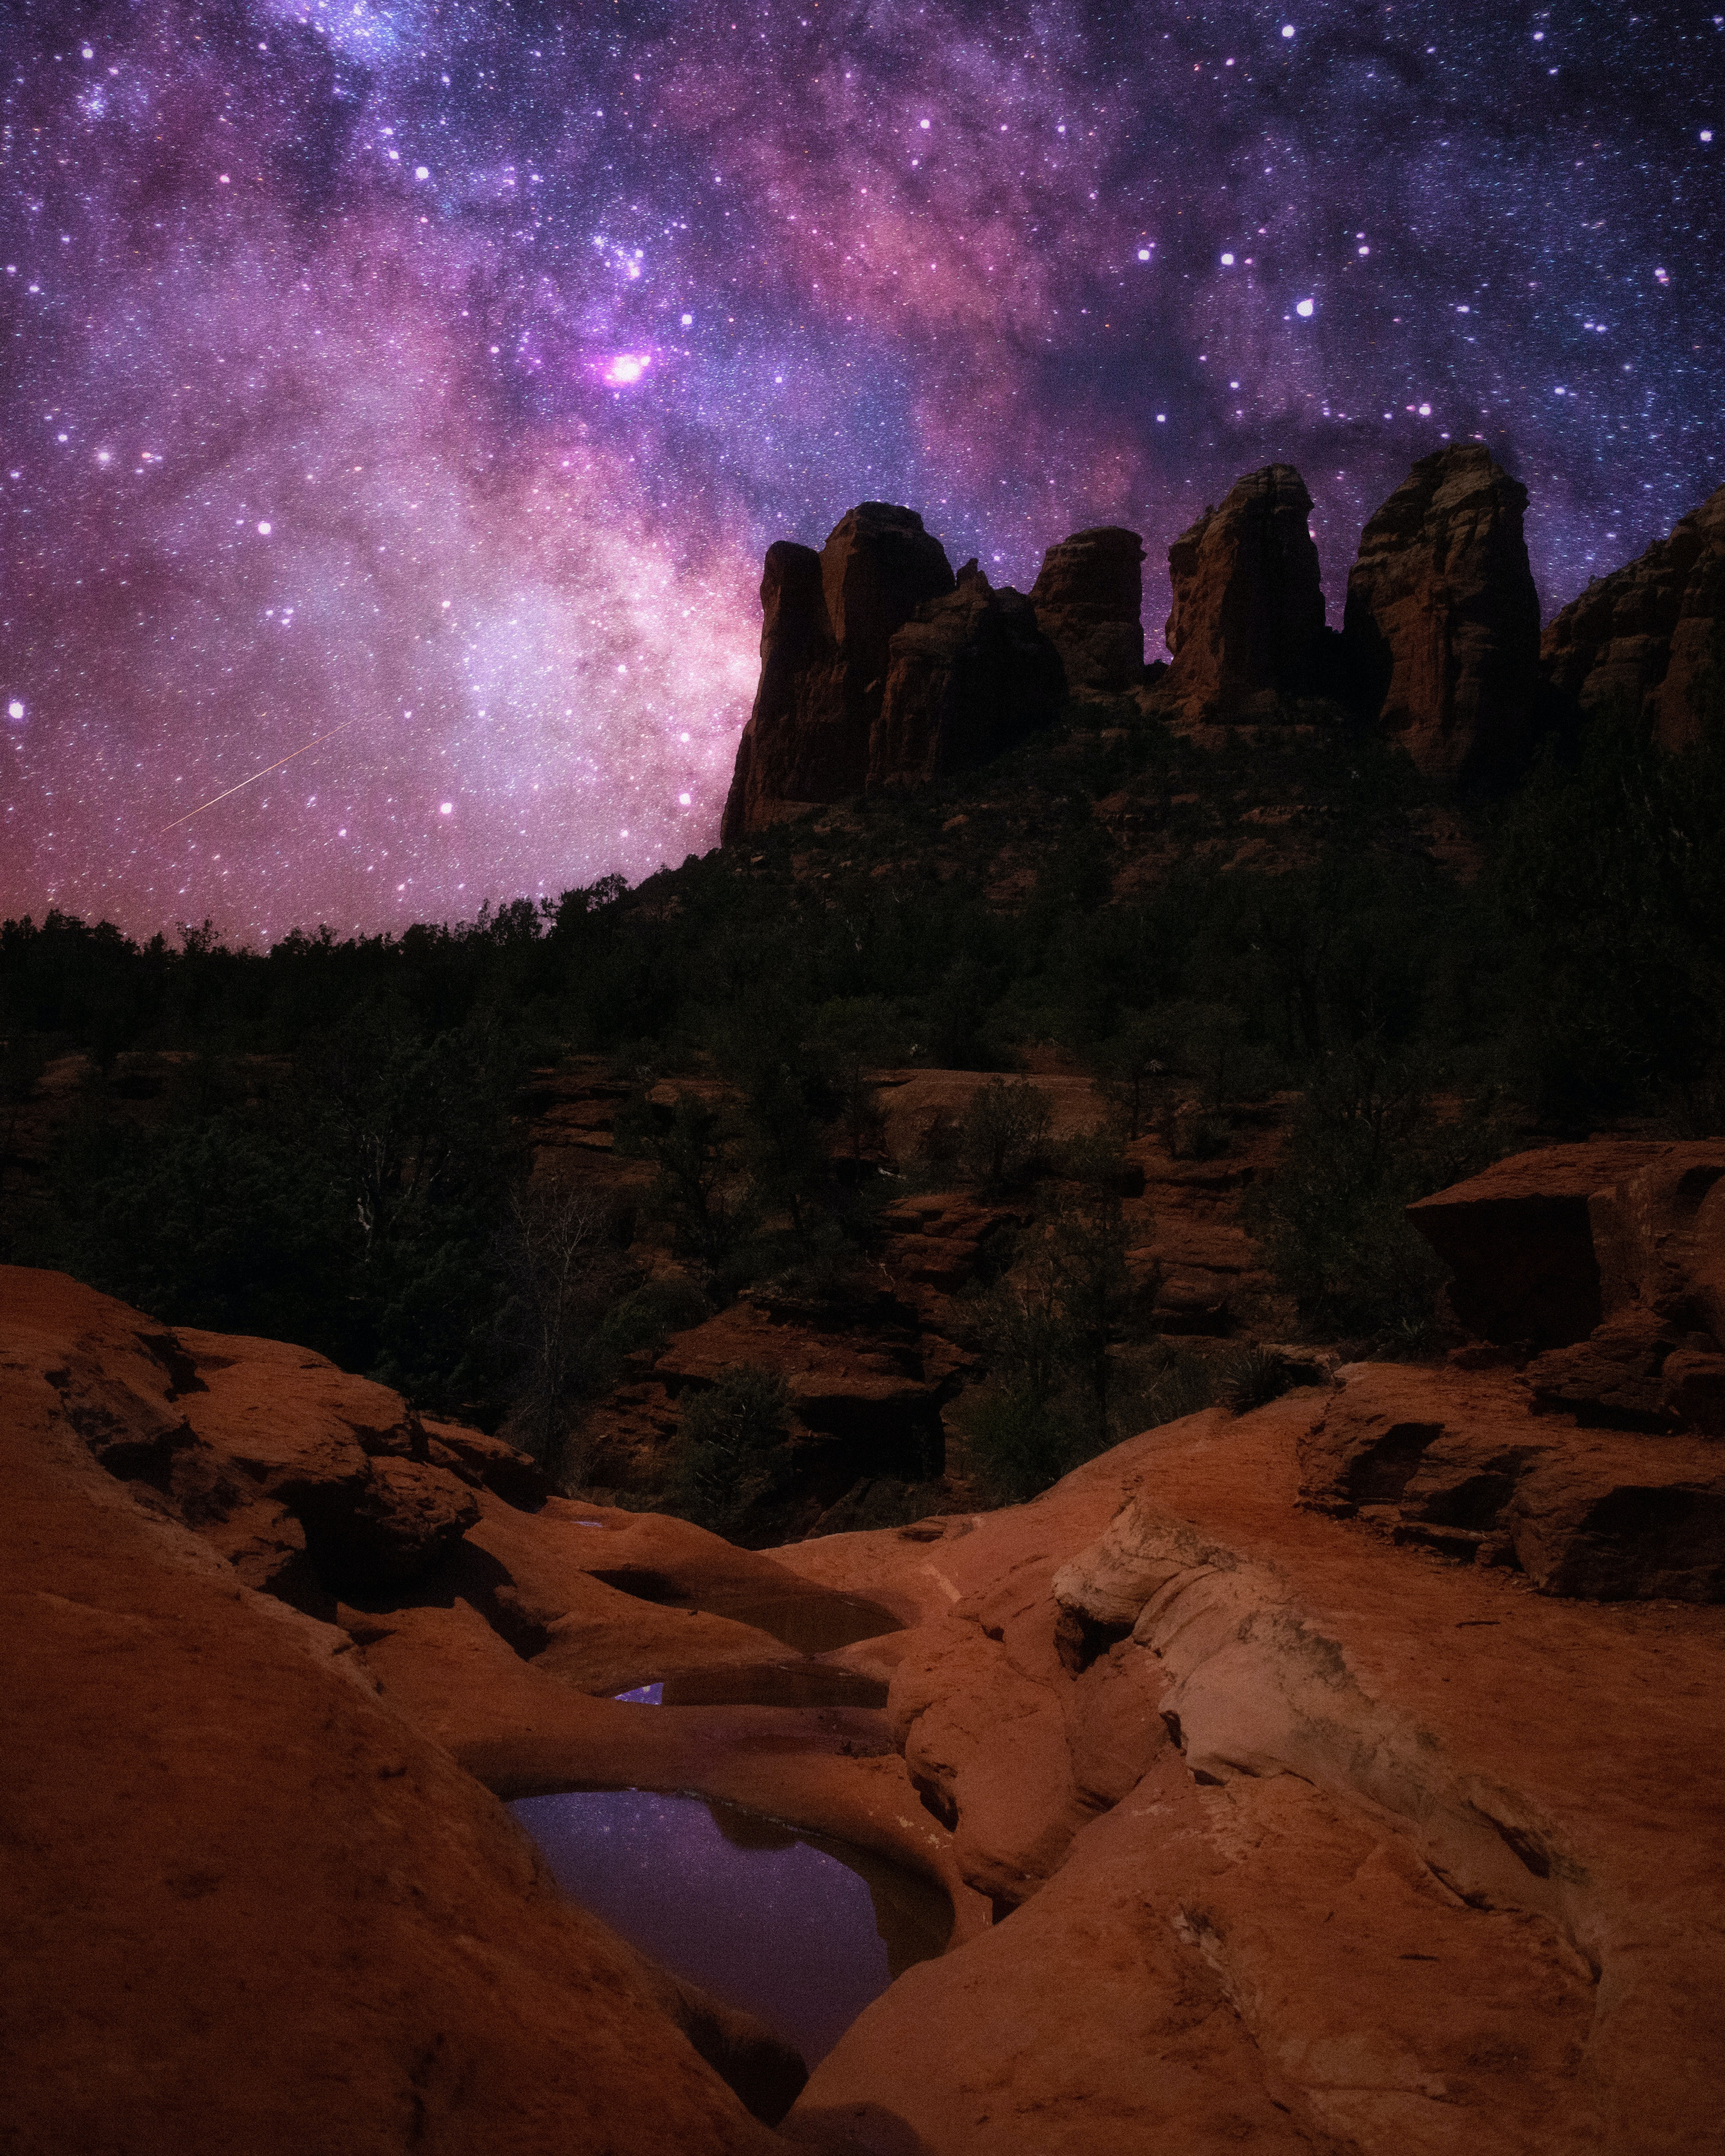 104091 download wallpaper Nature, Rocks, Canyon, Starry Sky, Night, Dark screensavers and pictures for free